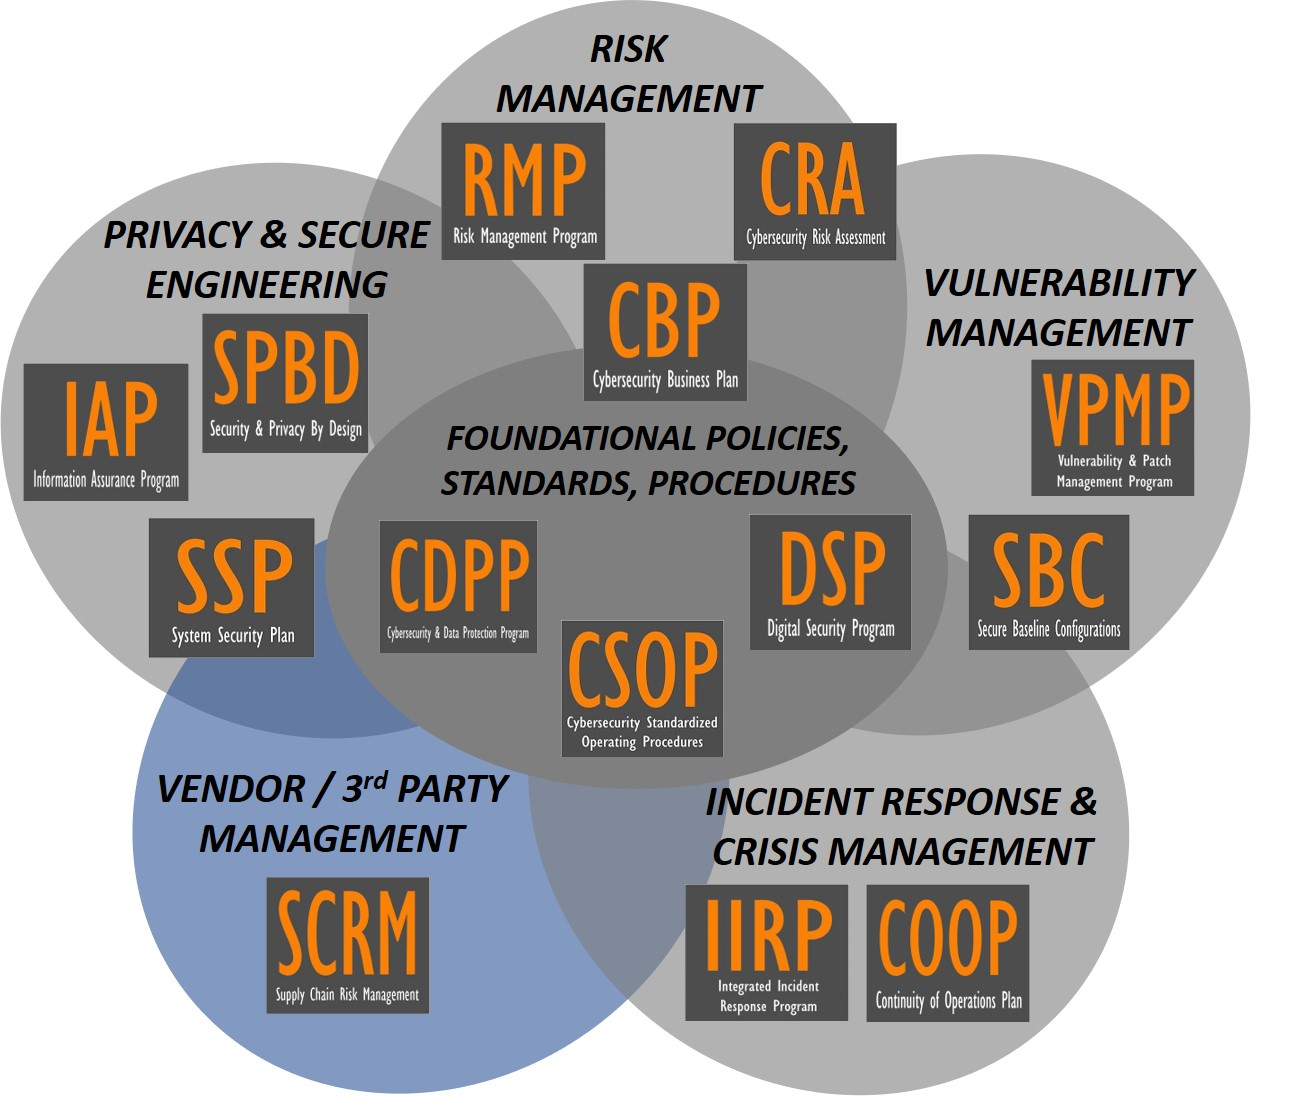 2020.1-complianceforge-products-supply-chain-risk-management-scrm.jpg